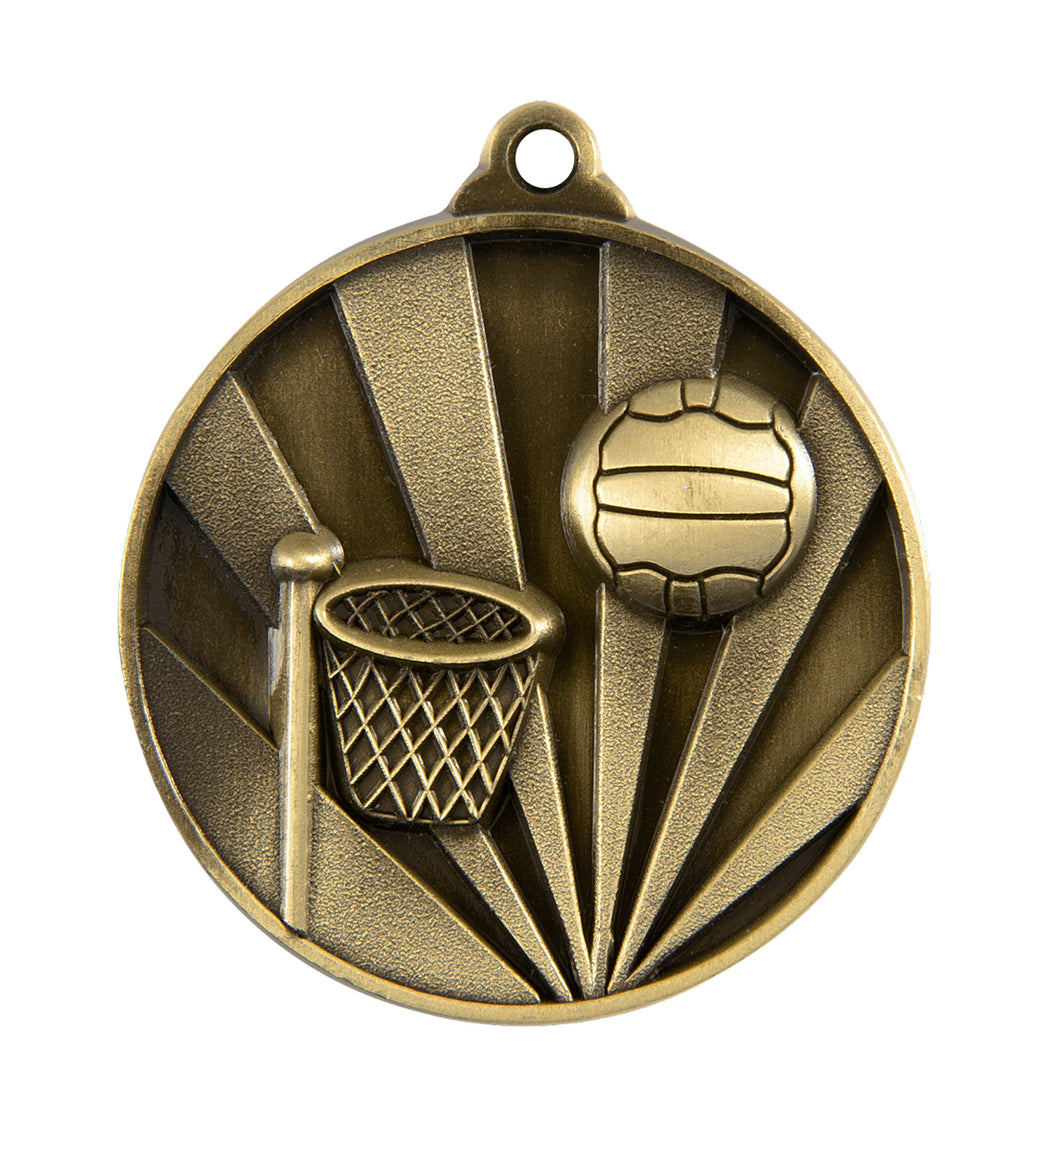 1076-8G Sunrise Netball Medal - Great Value! Featuring a Hoop & Netball  50mm Diameter, Ribbon & 25 x 38mm Engraving plate of the back included, Gold Coast Trophies Burleigh